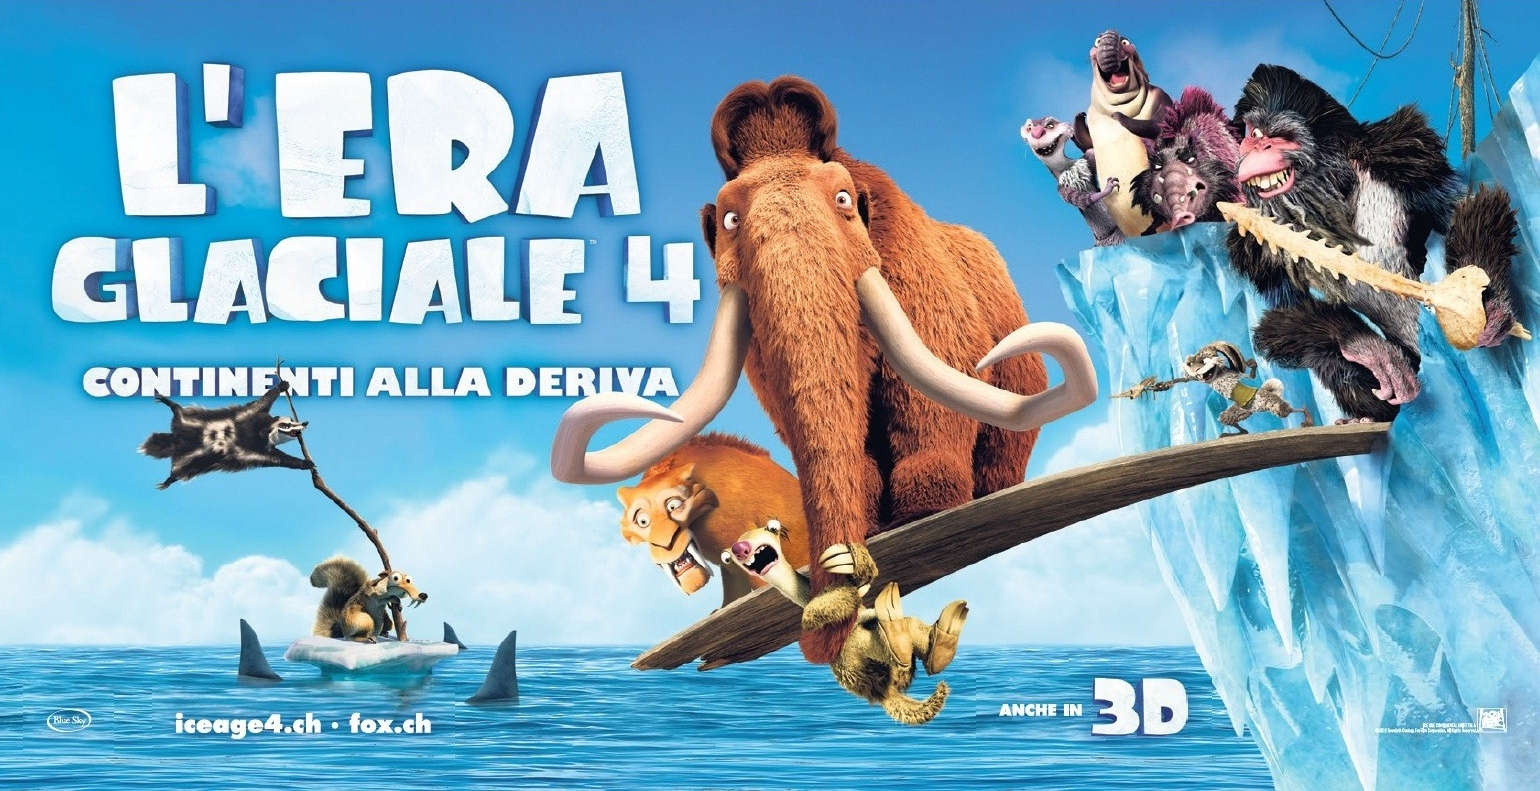 Watch Ice Age 2002 full movie online or download fast